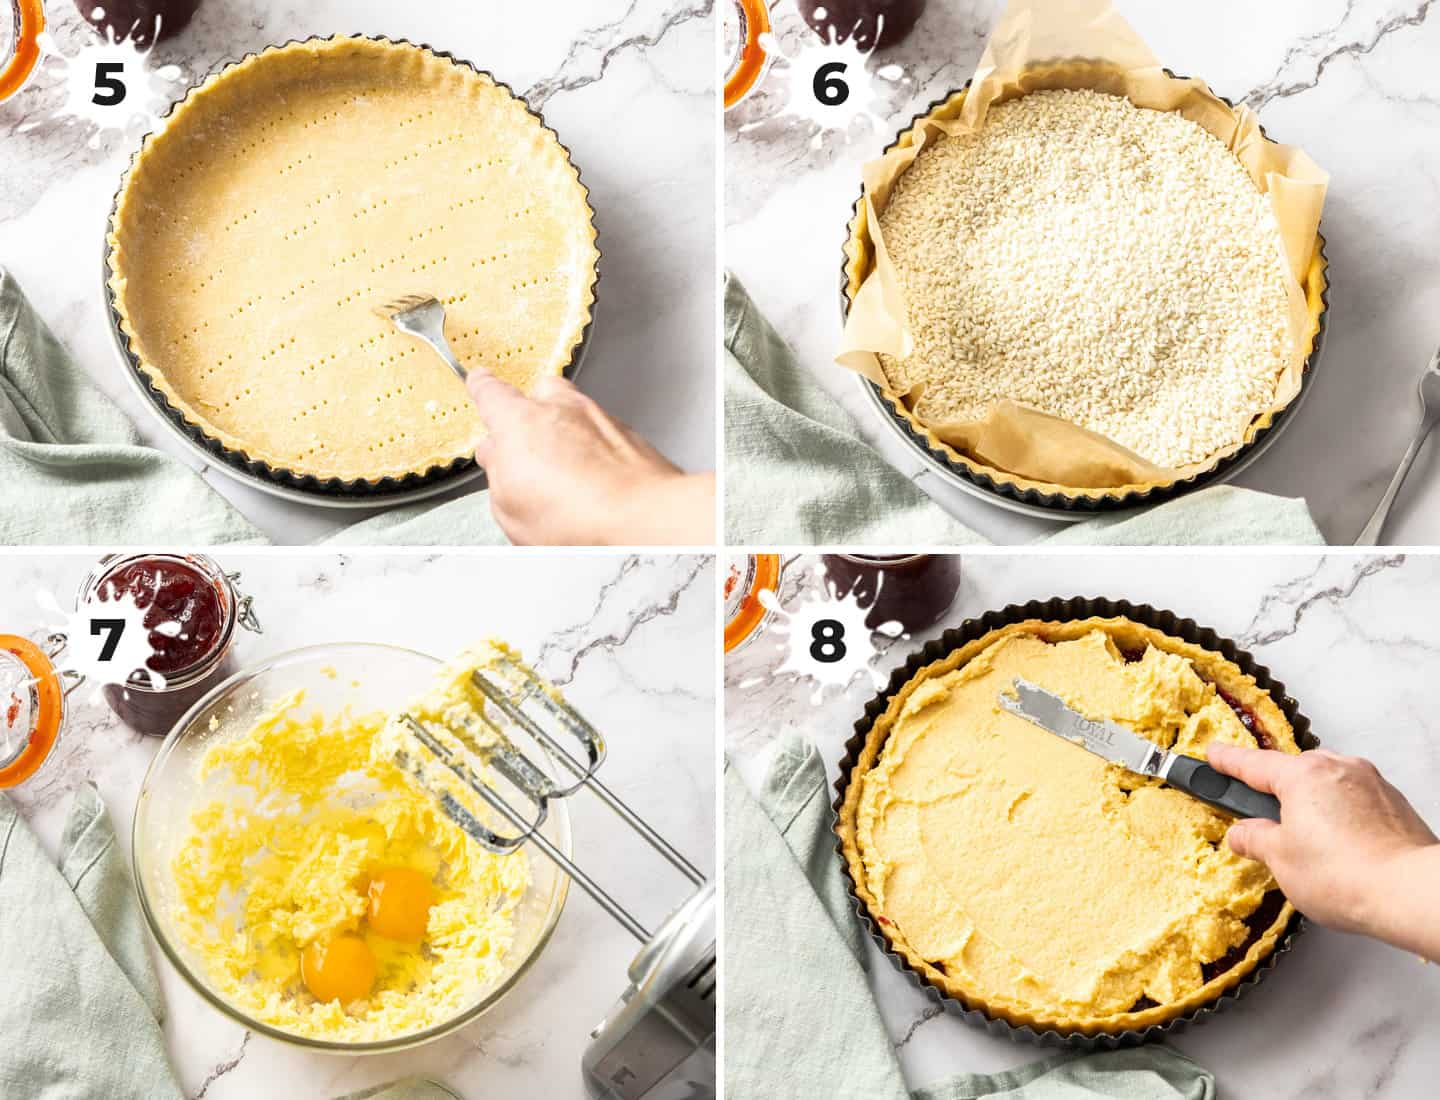 A collage of 4 images showing how to assemble the bakewell tart.